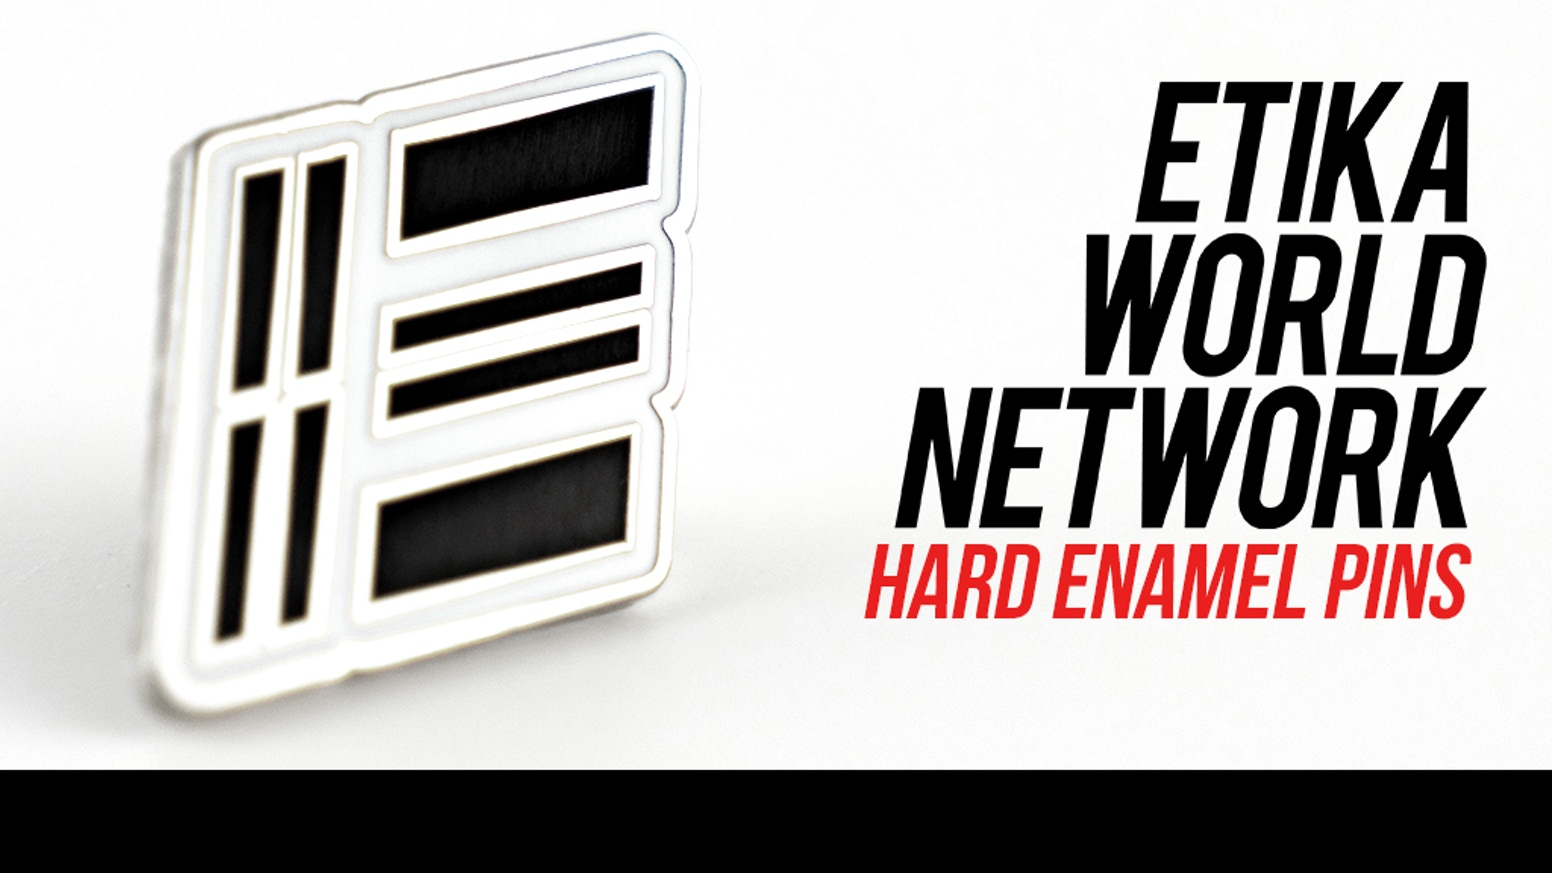 Making Hard Enamel Pins for the Official etikaworldnetwork.com Website.